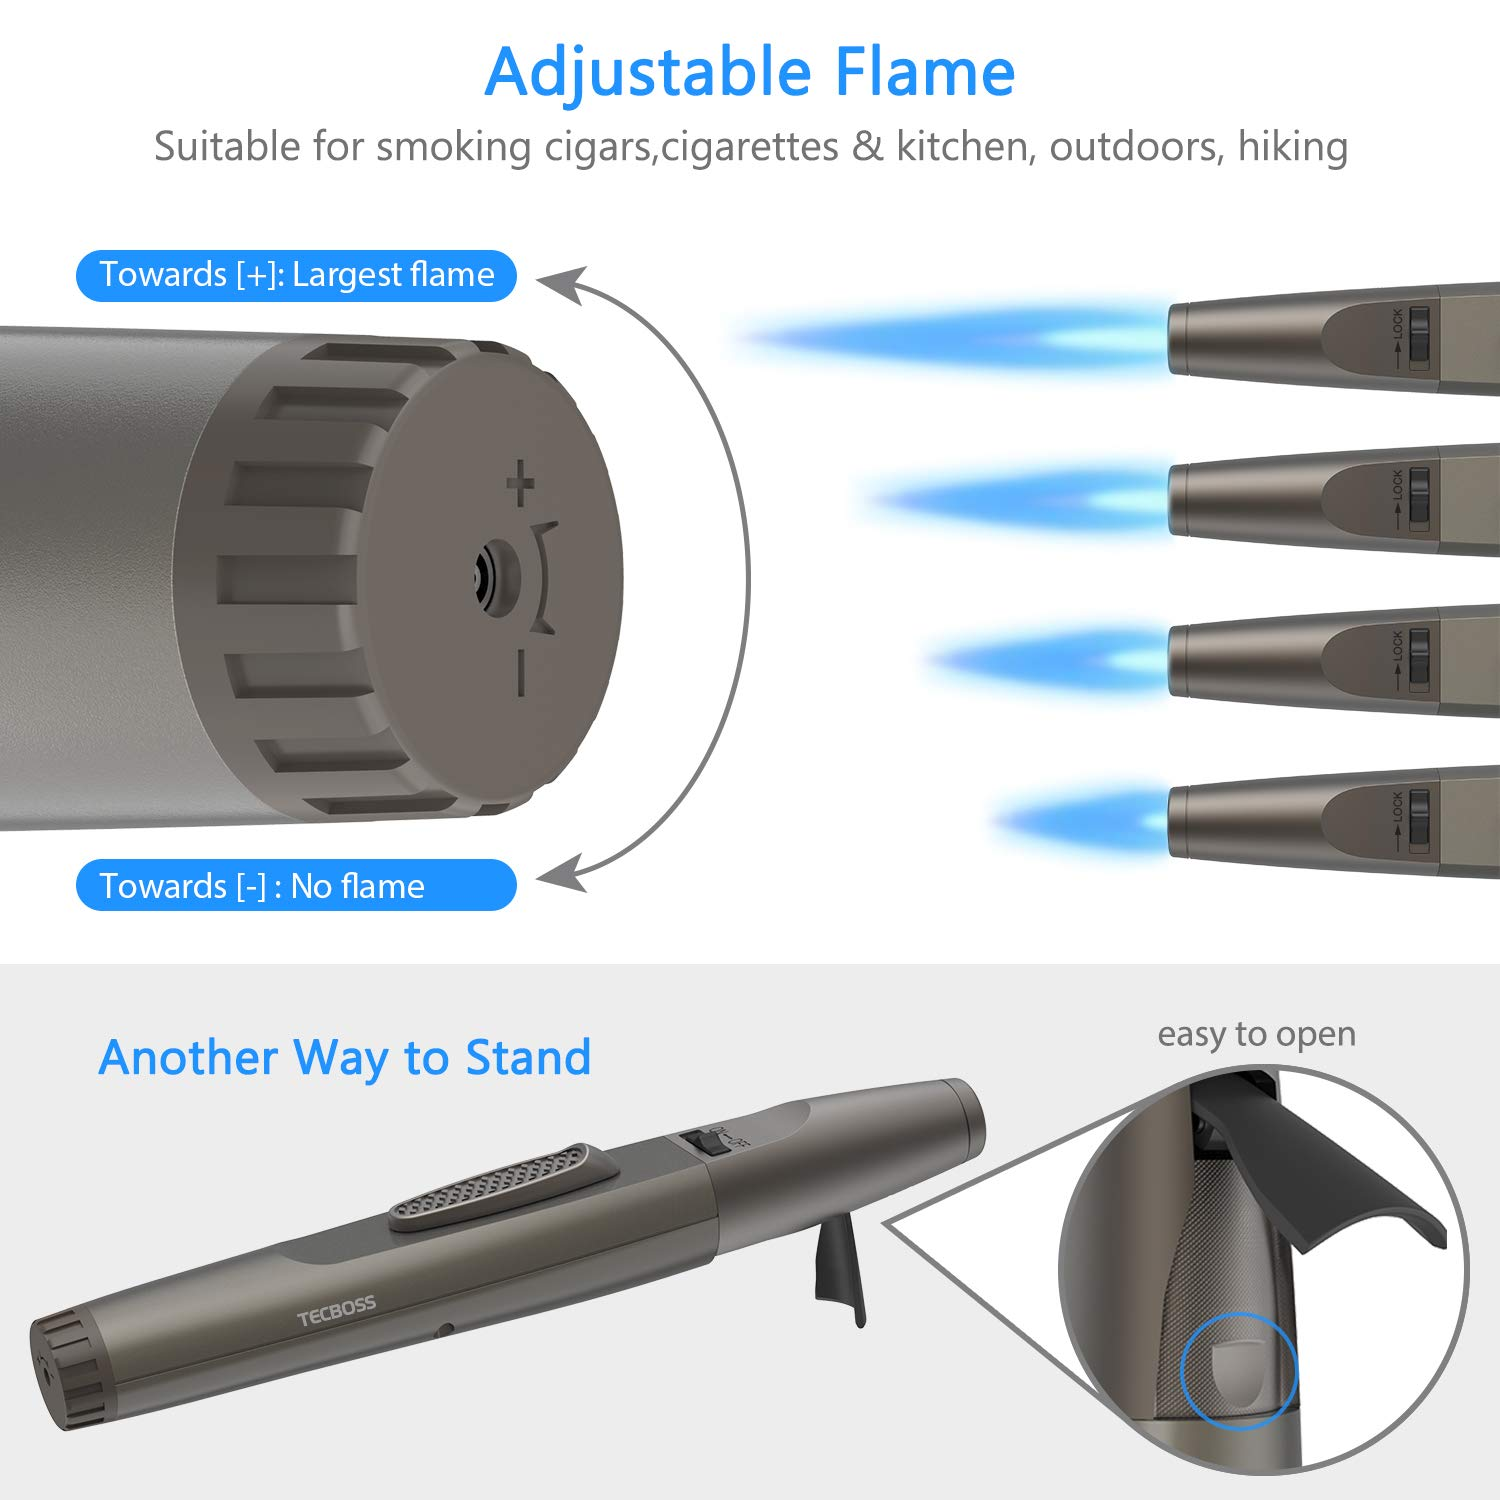 Torch Lighter, Tecboss Lighter Adjustable Jet Flame Portable Refillable Butane Lighters for Camping Cooking BBQs Fireworks, Metal Casing, Gift Box (Gas Not Included)